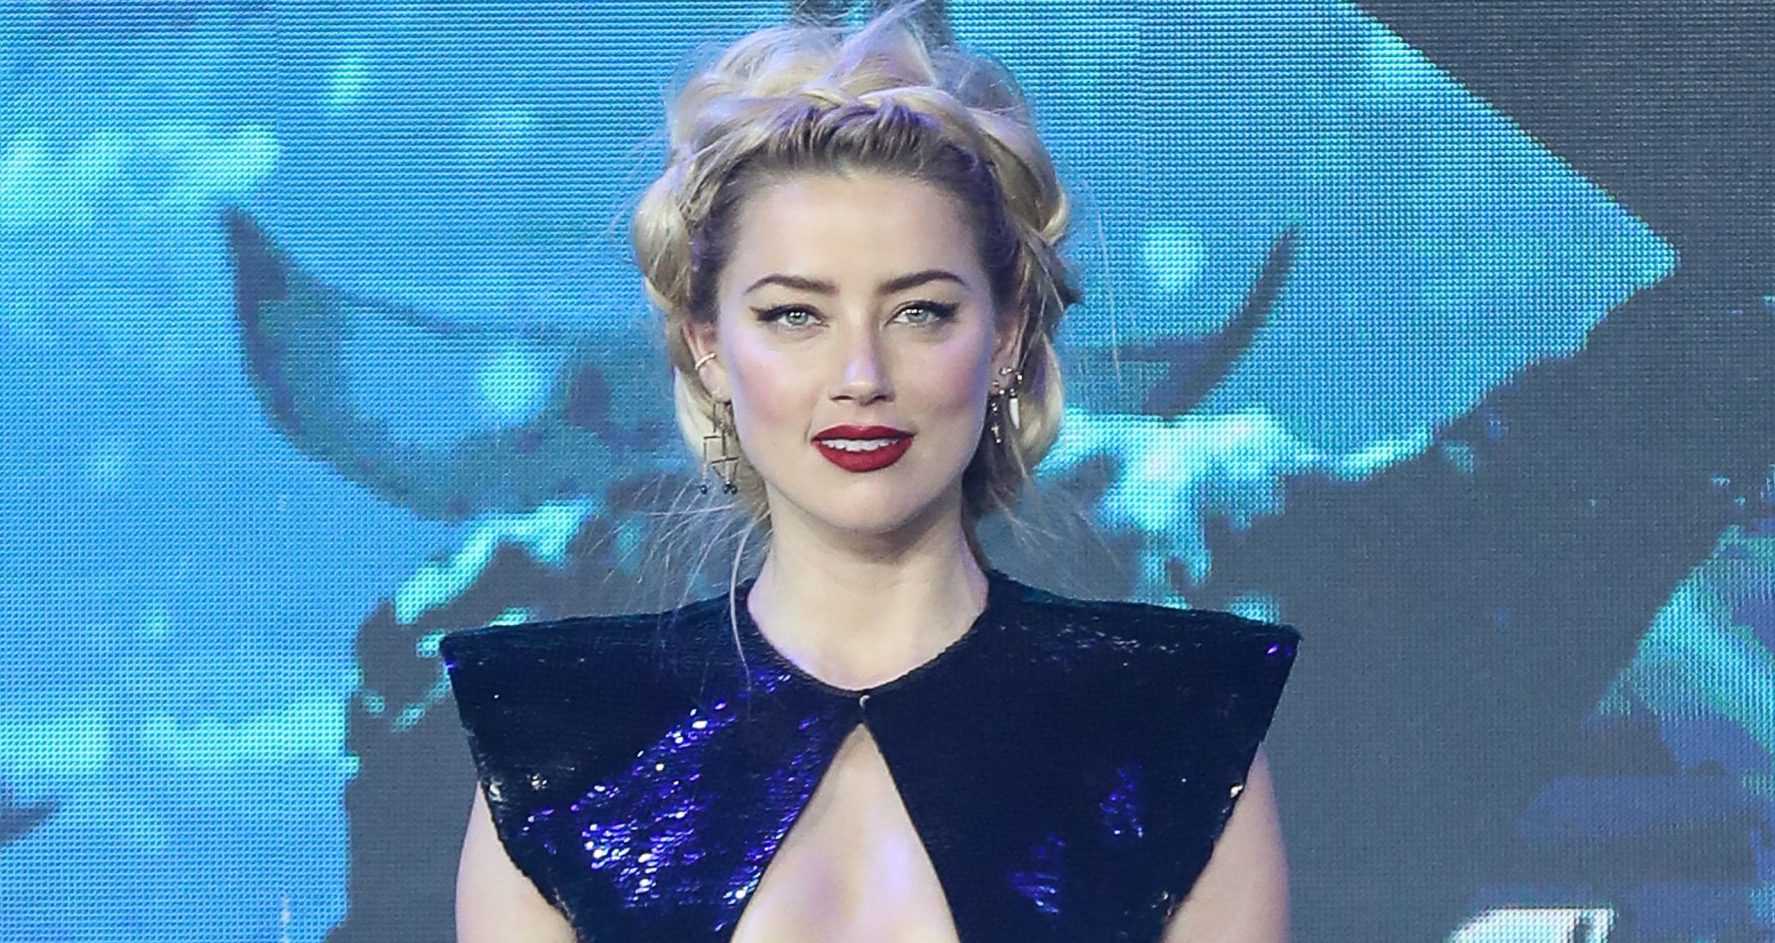 Amber Heard refuses to be 'silent' on domestic violence but avoids mentioning ex-husband Johnny Depp